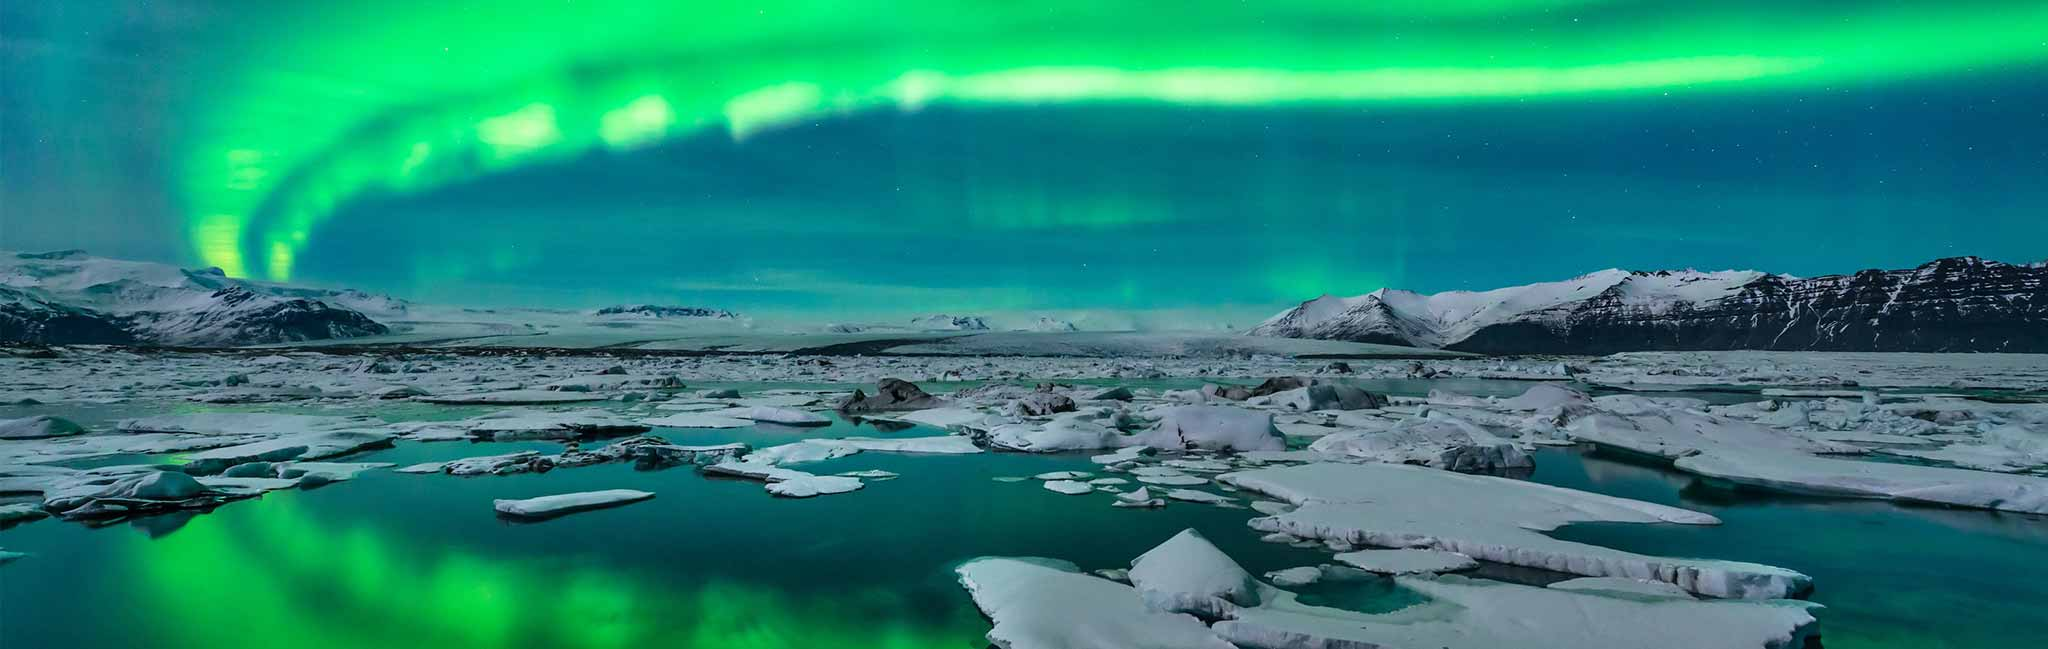 Iceland Tour - view of northern lights